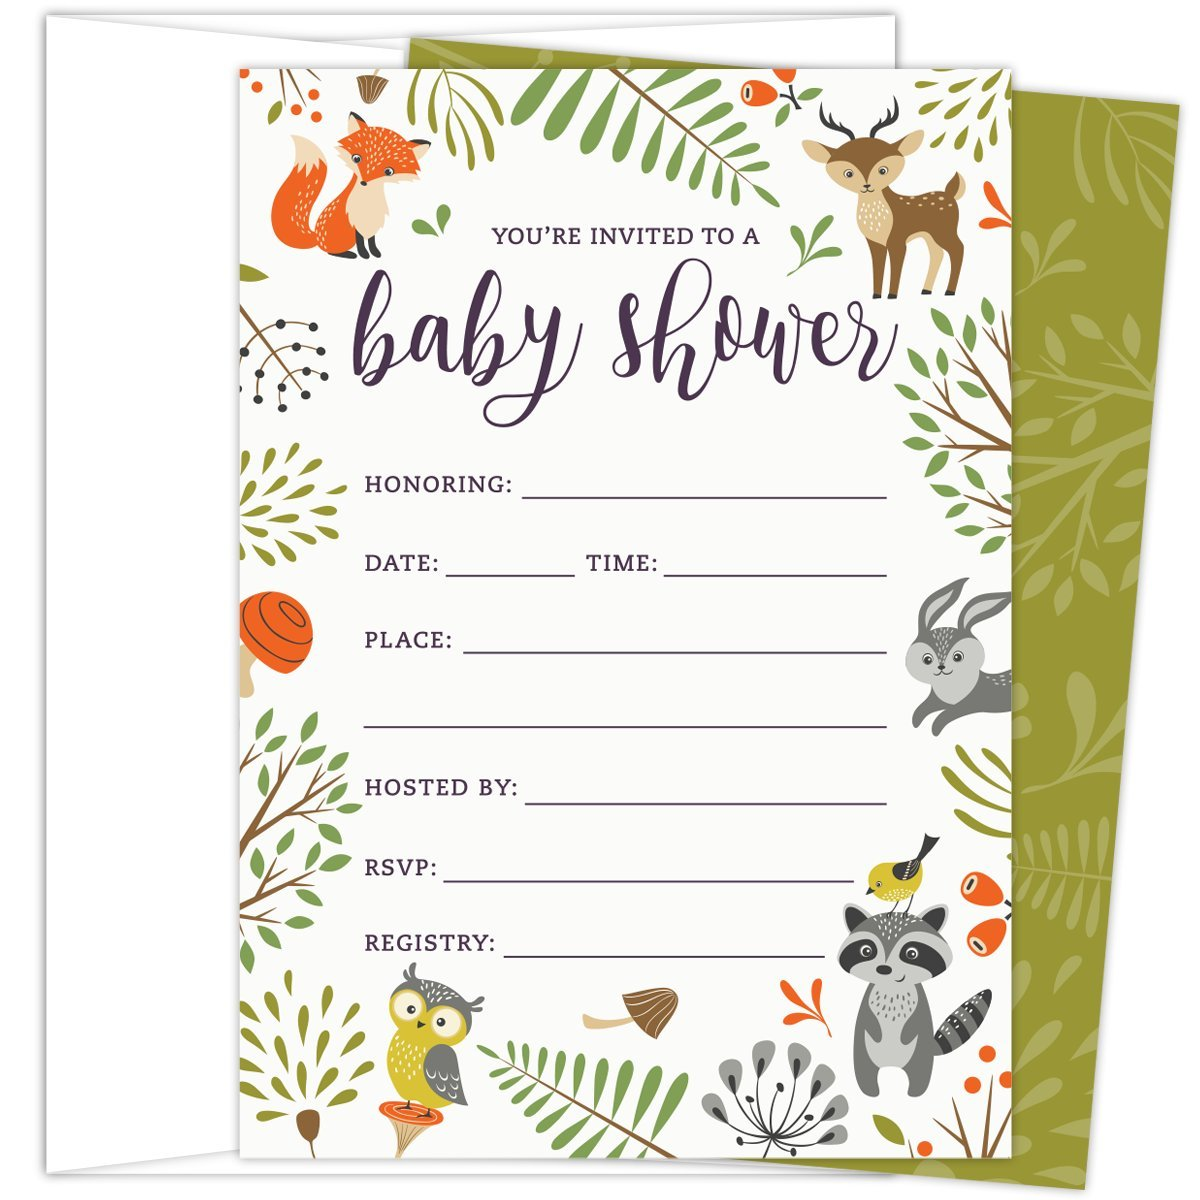 Woodland Baby Shower Invitations with Owl and Forest Animals. Set of 25 Fill-in Style Blank Cards and Envelopes. Unisex design suitable for boy or girl. by Koko Paper Co